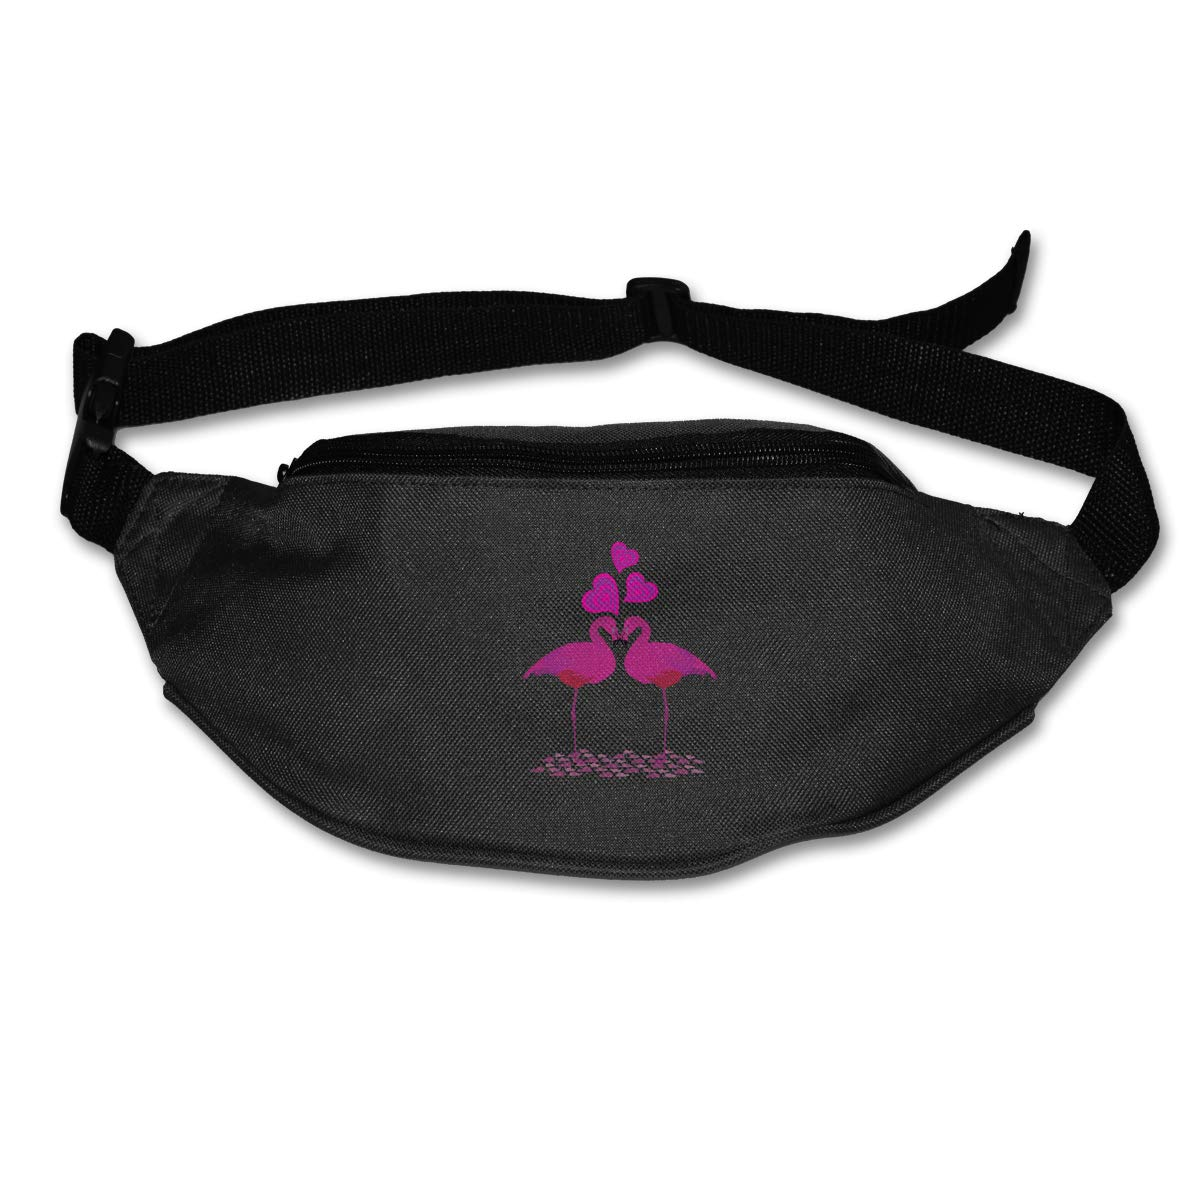 Flamingo Heart Sport Waist Bag Fanny Pack Adjustable For Hike